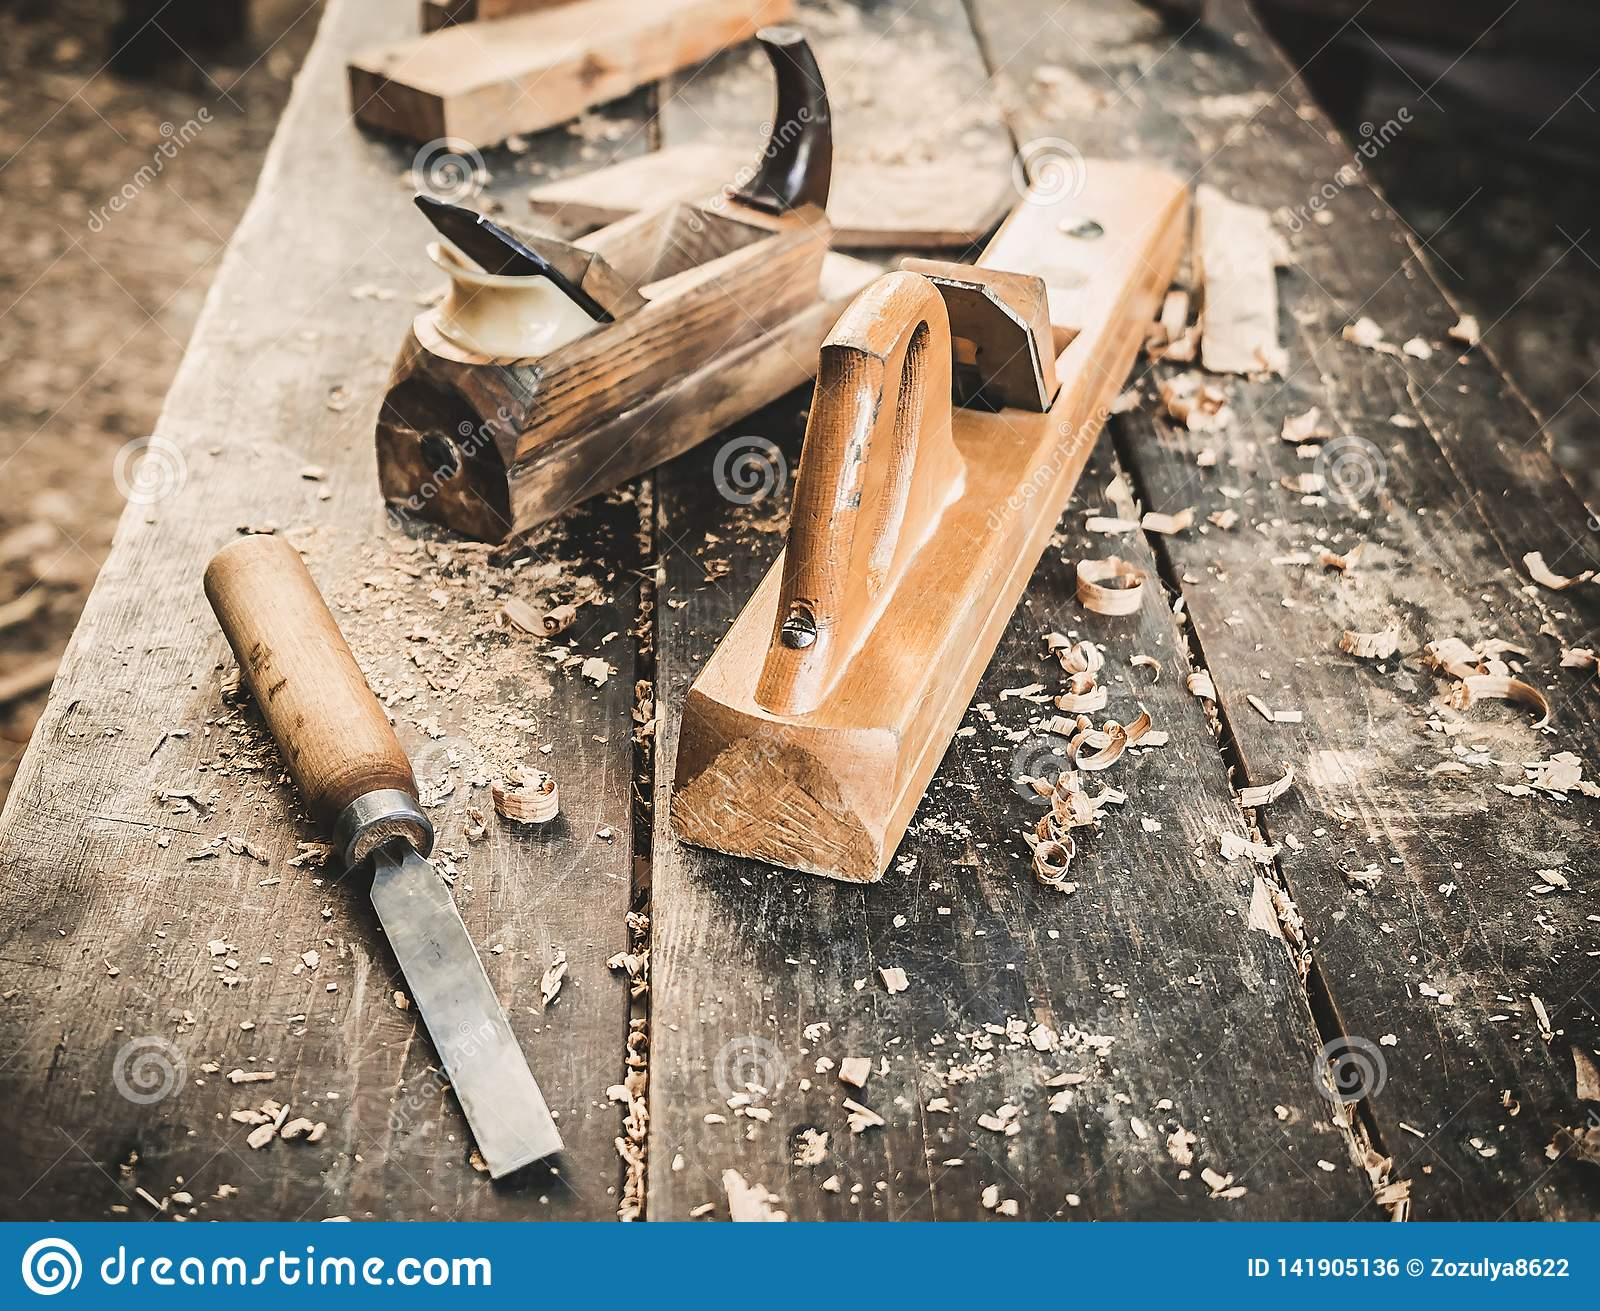 Old woodworking hand tool: wooden plane, chisel and drawing knife in a carpentry workshop on dirty rustic table covered